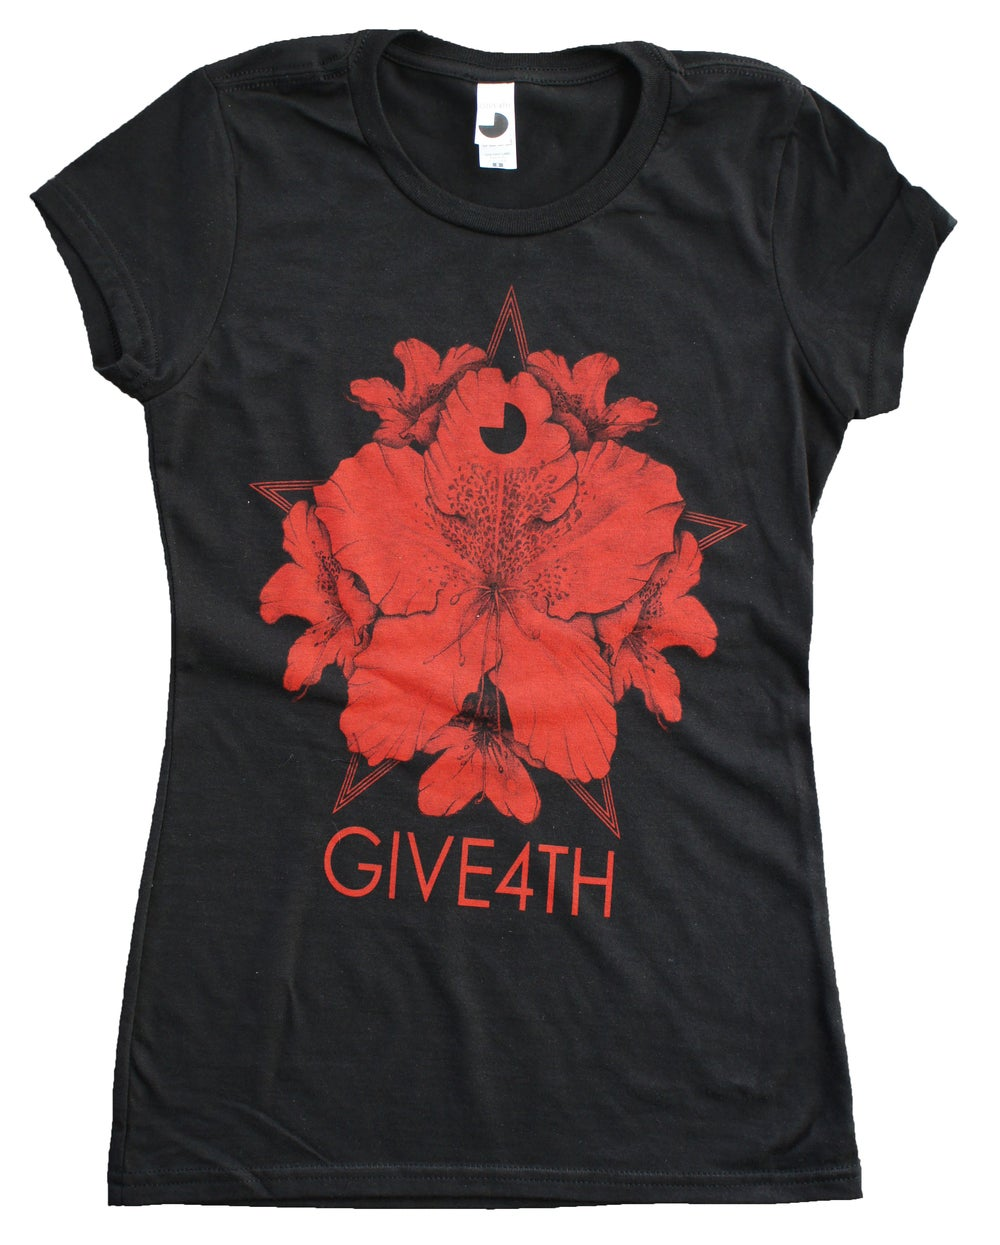 Image of Give4th Nepal Women's Tshirt